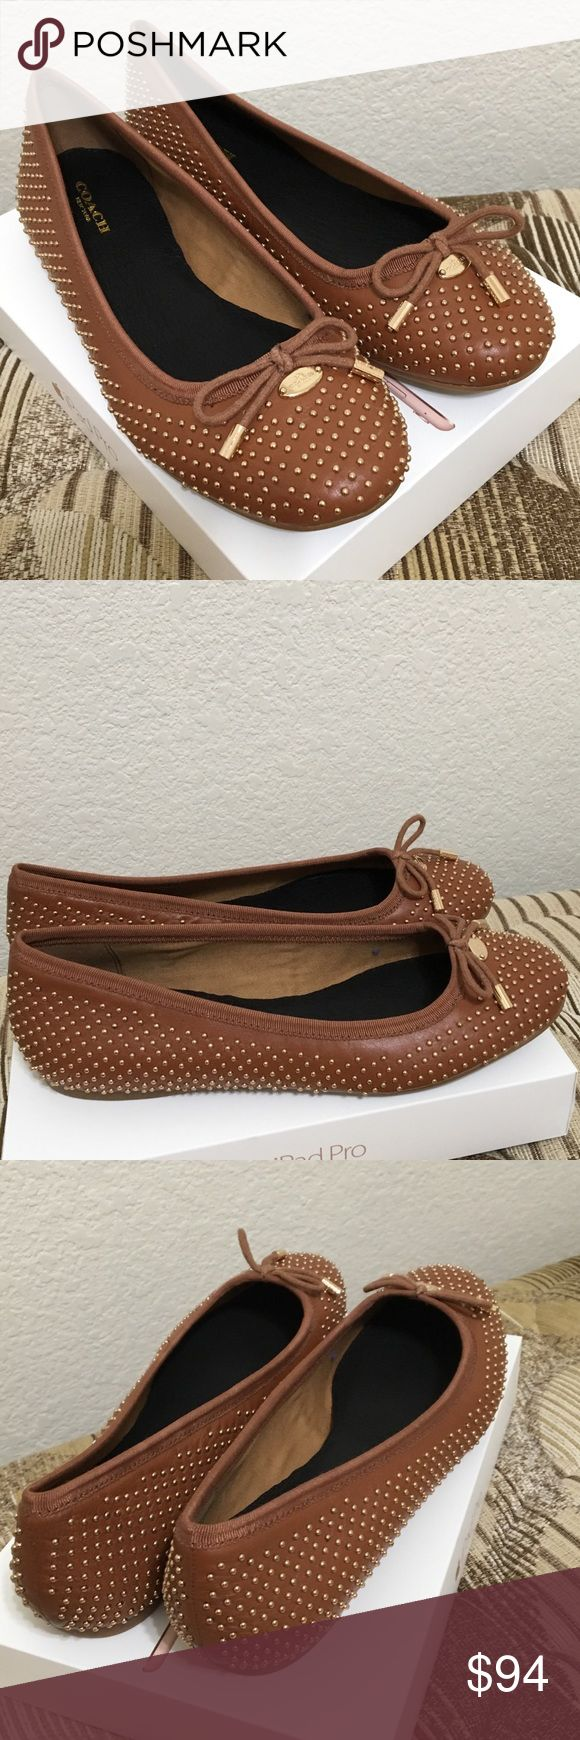 Coach Flat Shoes Brown color, Size 7 , Brand New, price firm Coach Shoes Flats & Loafers